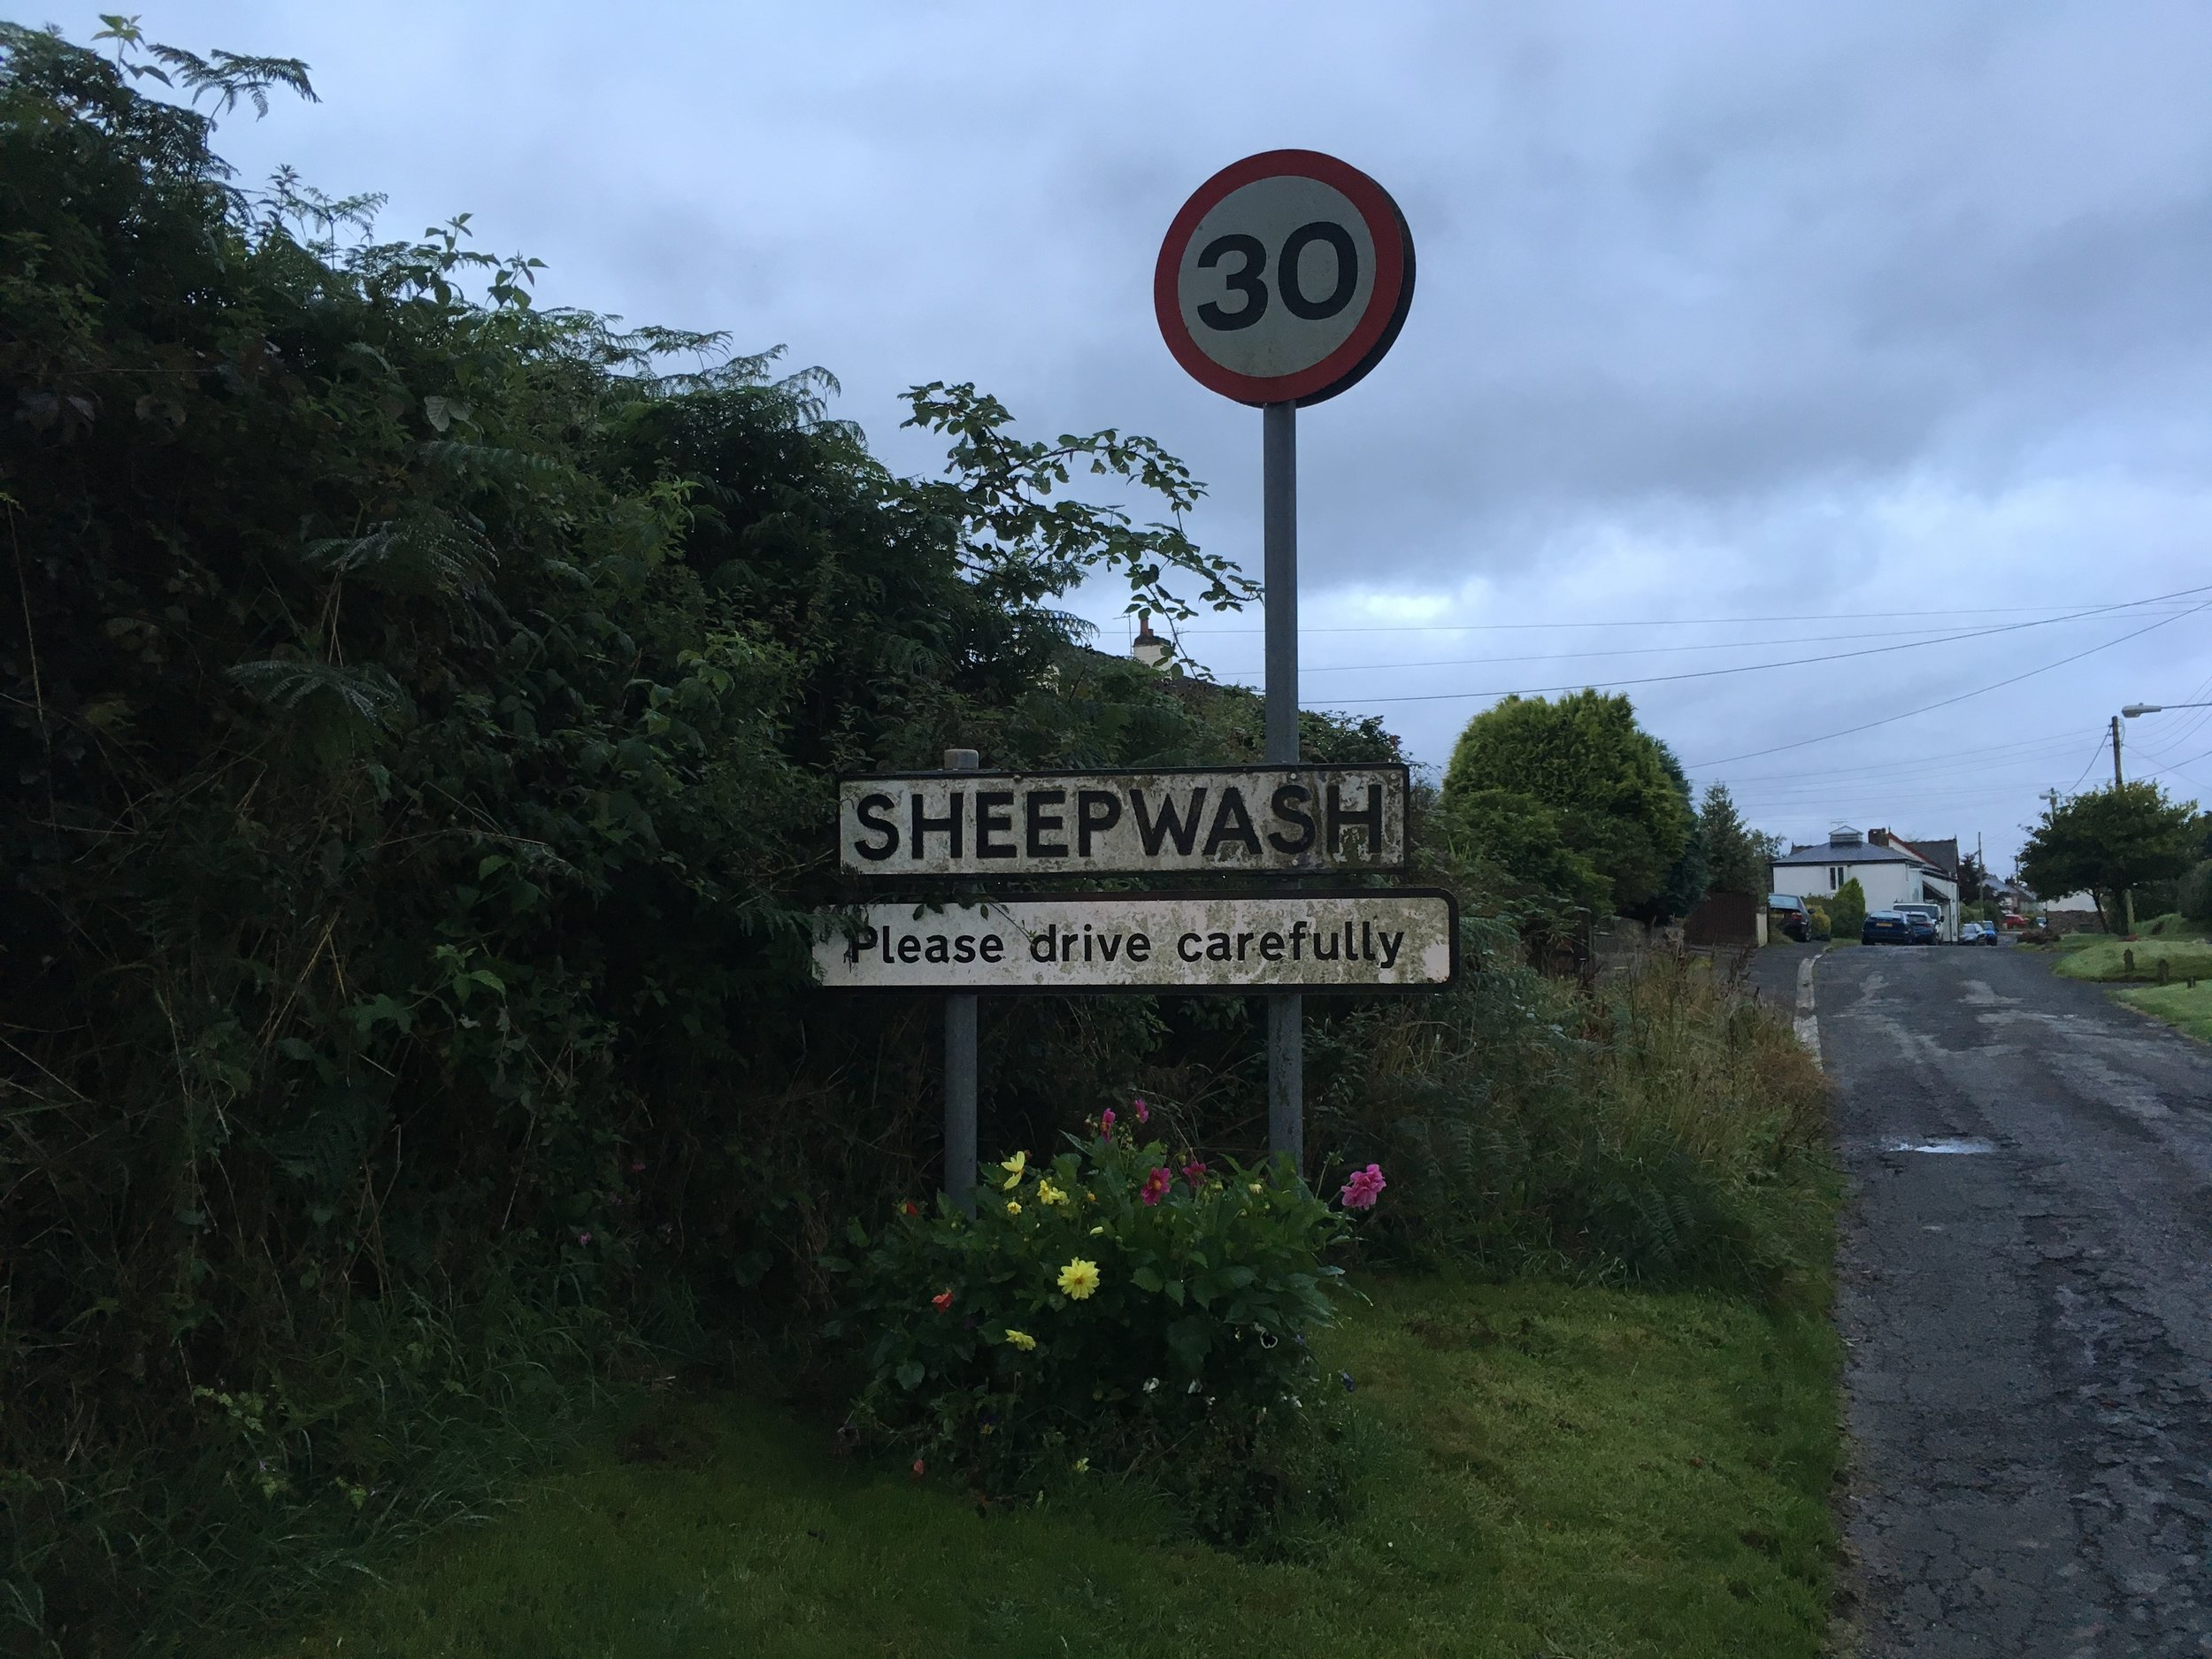 sheepwash entry sign